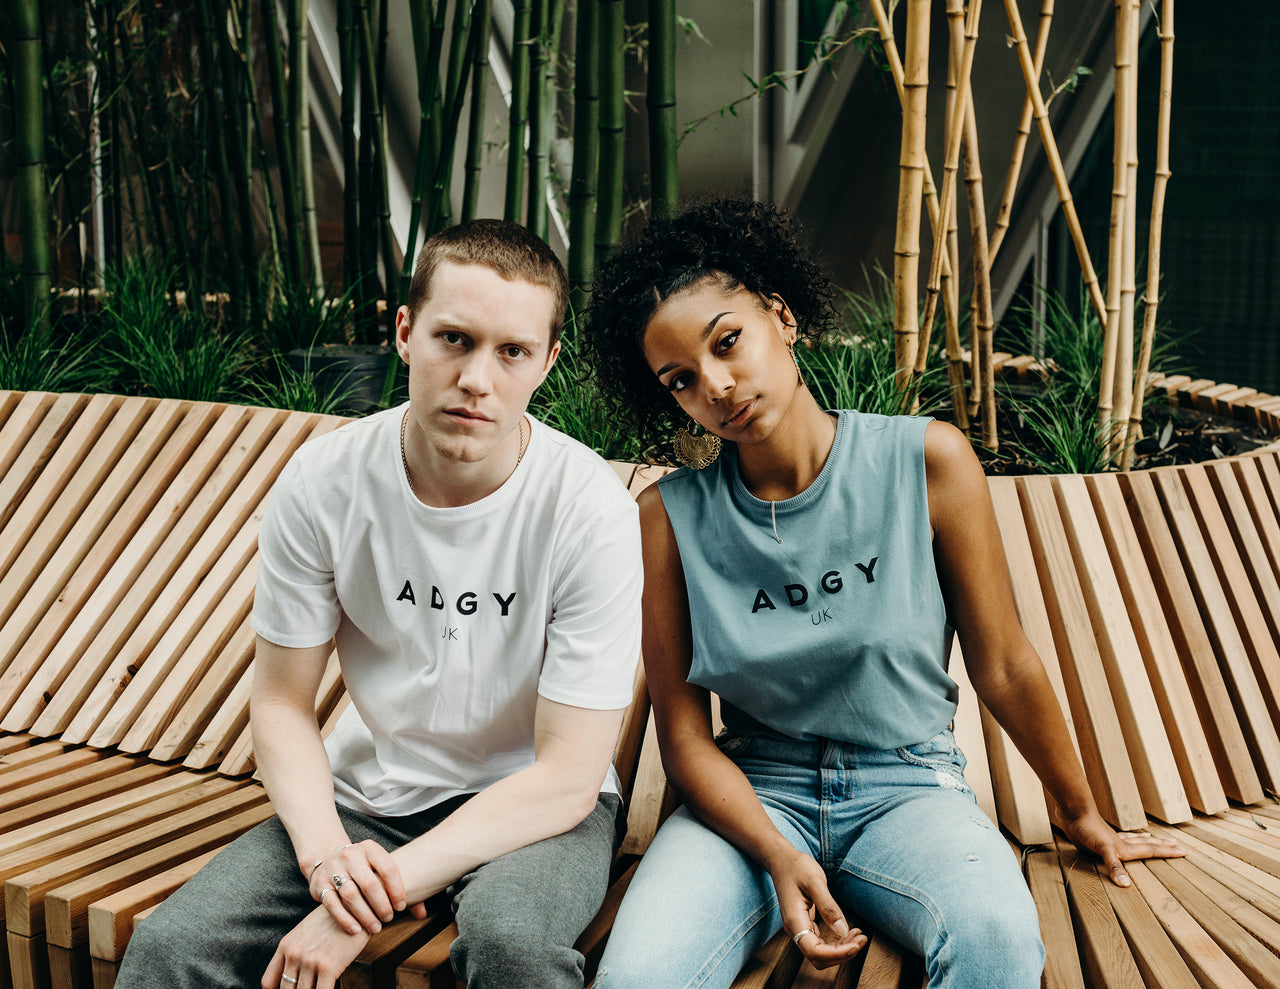 gender neutral streetwear, genderless streetwear, urban streetwear, gender neutral clothing, genderless clothing, unisex clothing, urban fashion, gender neutral fashion, genderless fashion, ethical fashion, ethical clothing, organic clothing